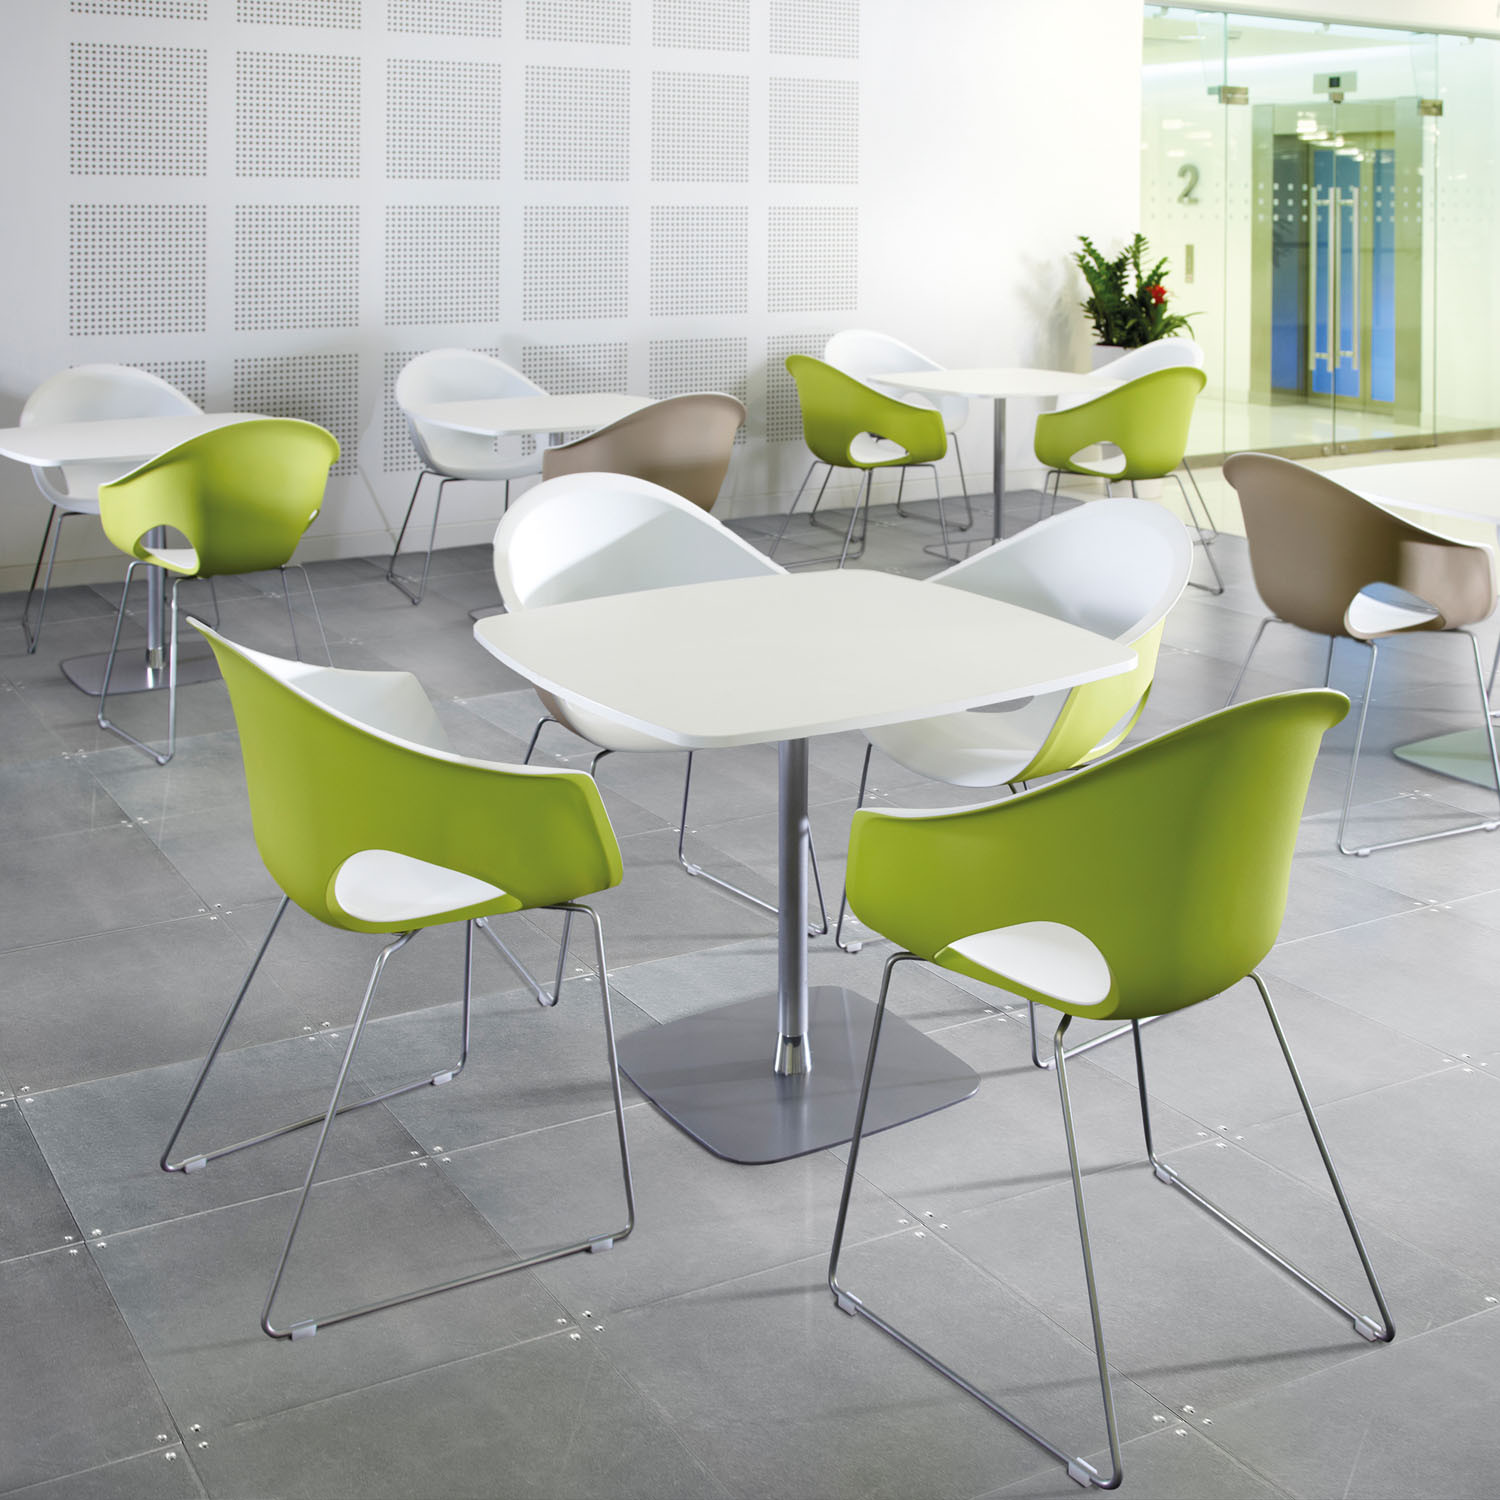 Zest Dining Chair by Connection